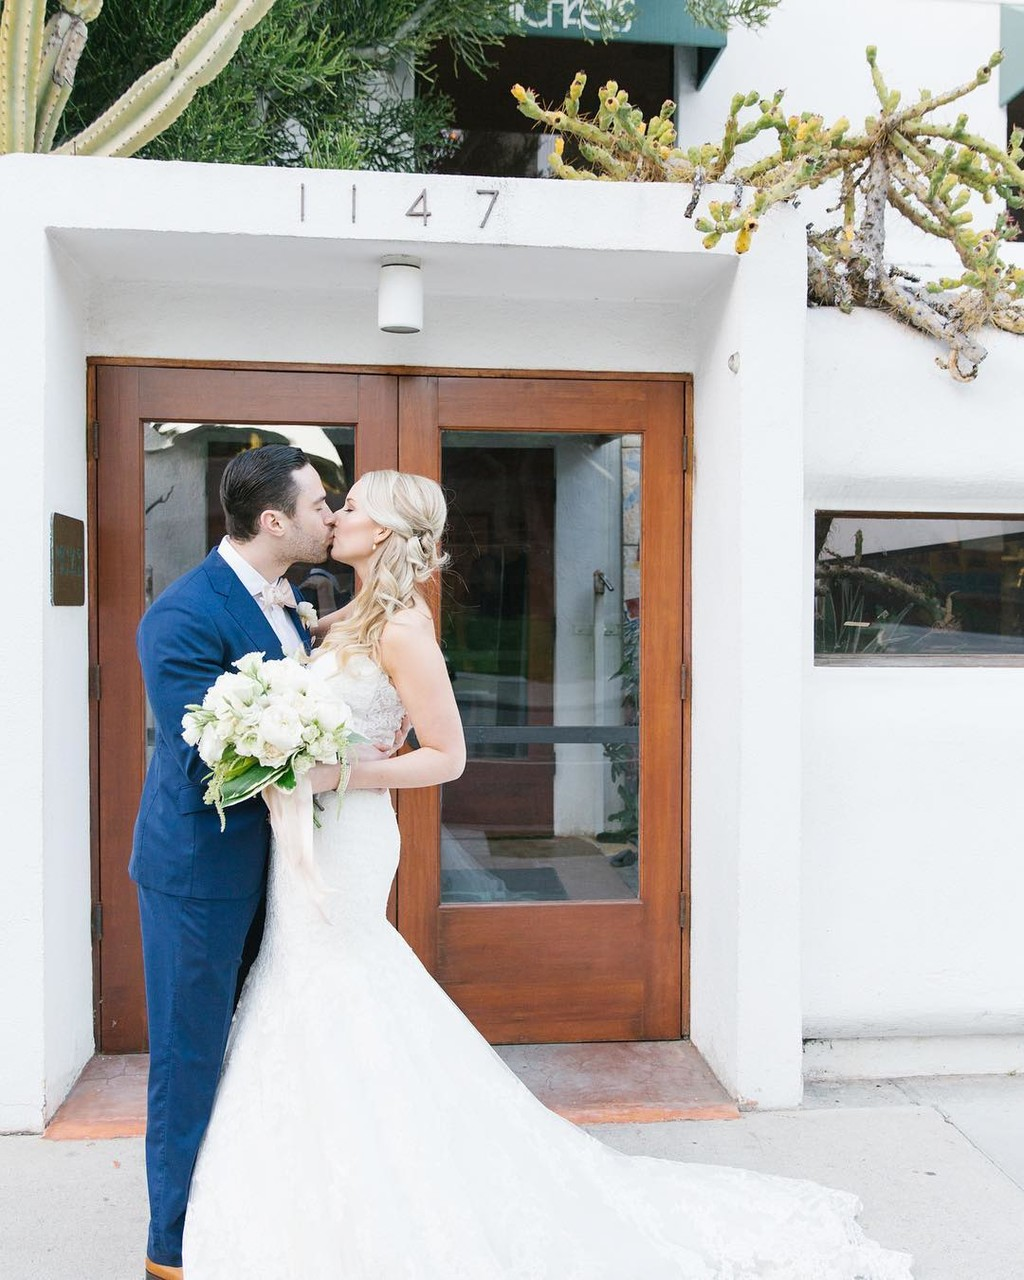 Super excited to see Jamie and Jordan's Santa Monica wedding featured on